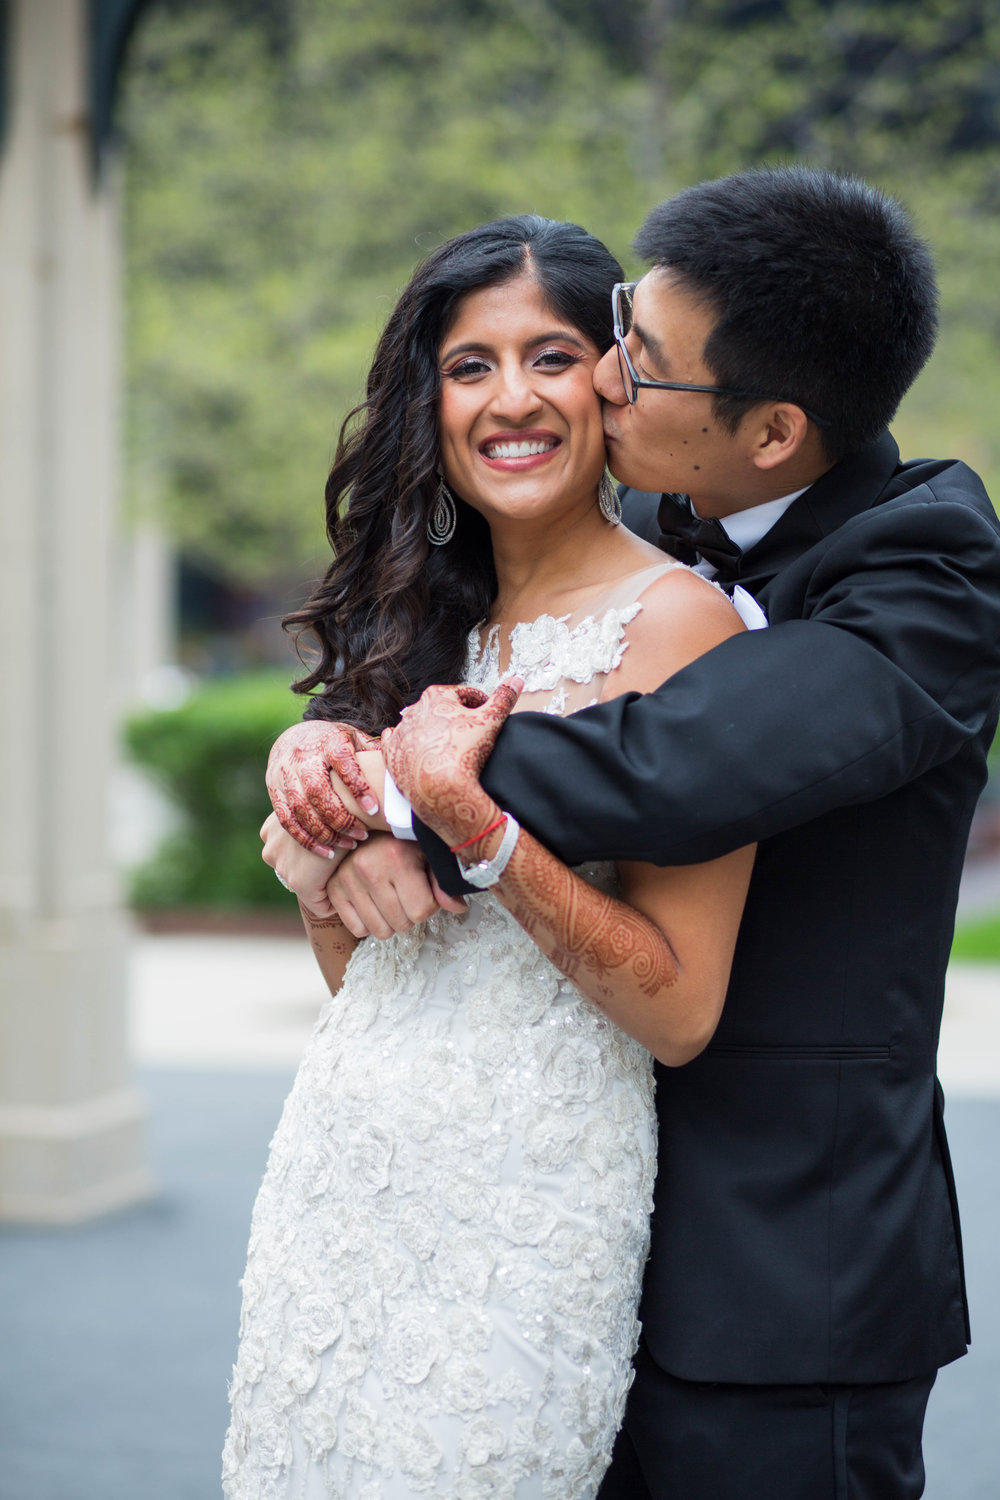 LeCapeWeddings - Chicago South Asian Wedding -110.jpg